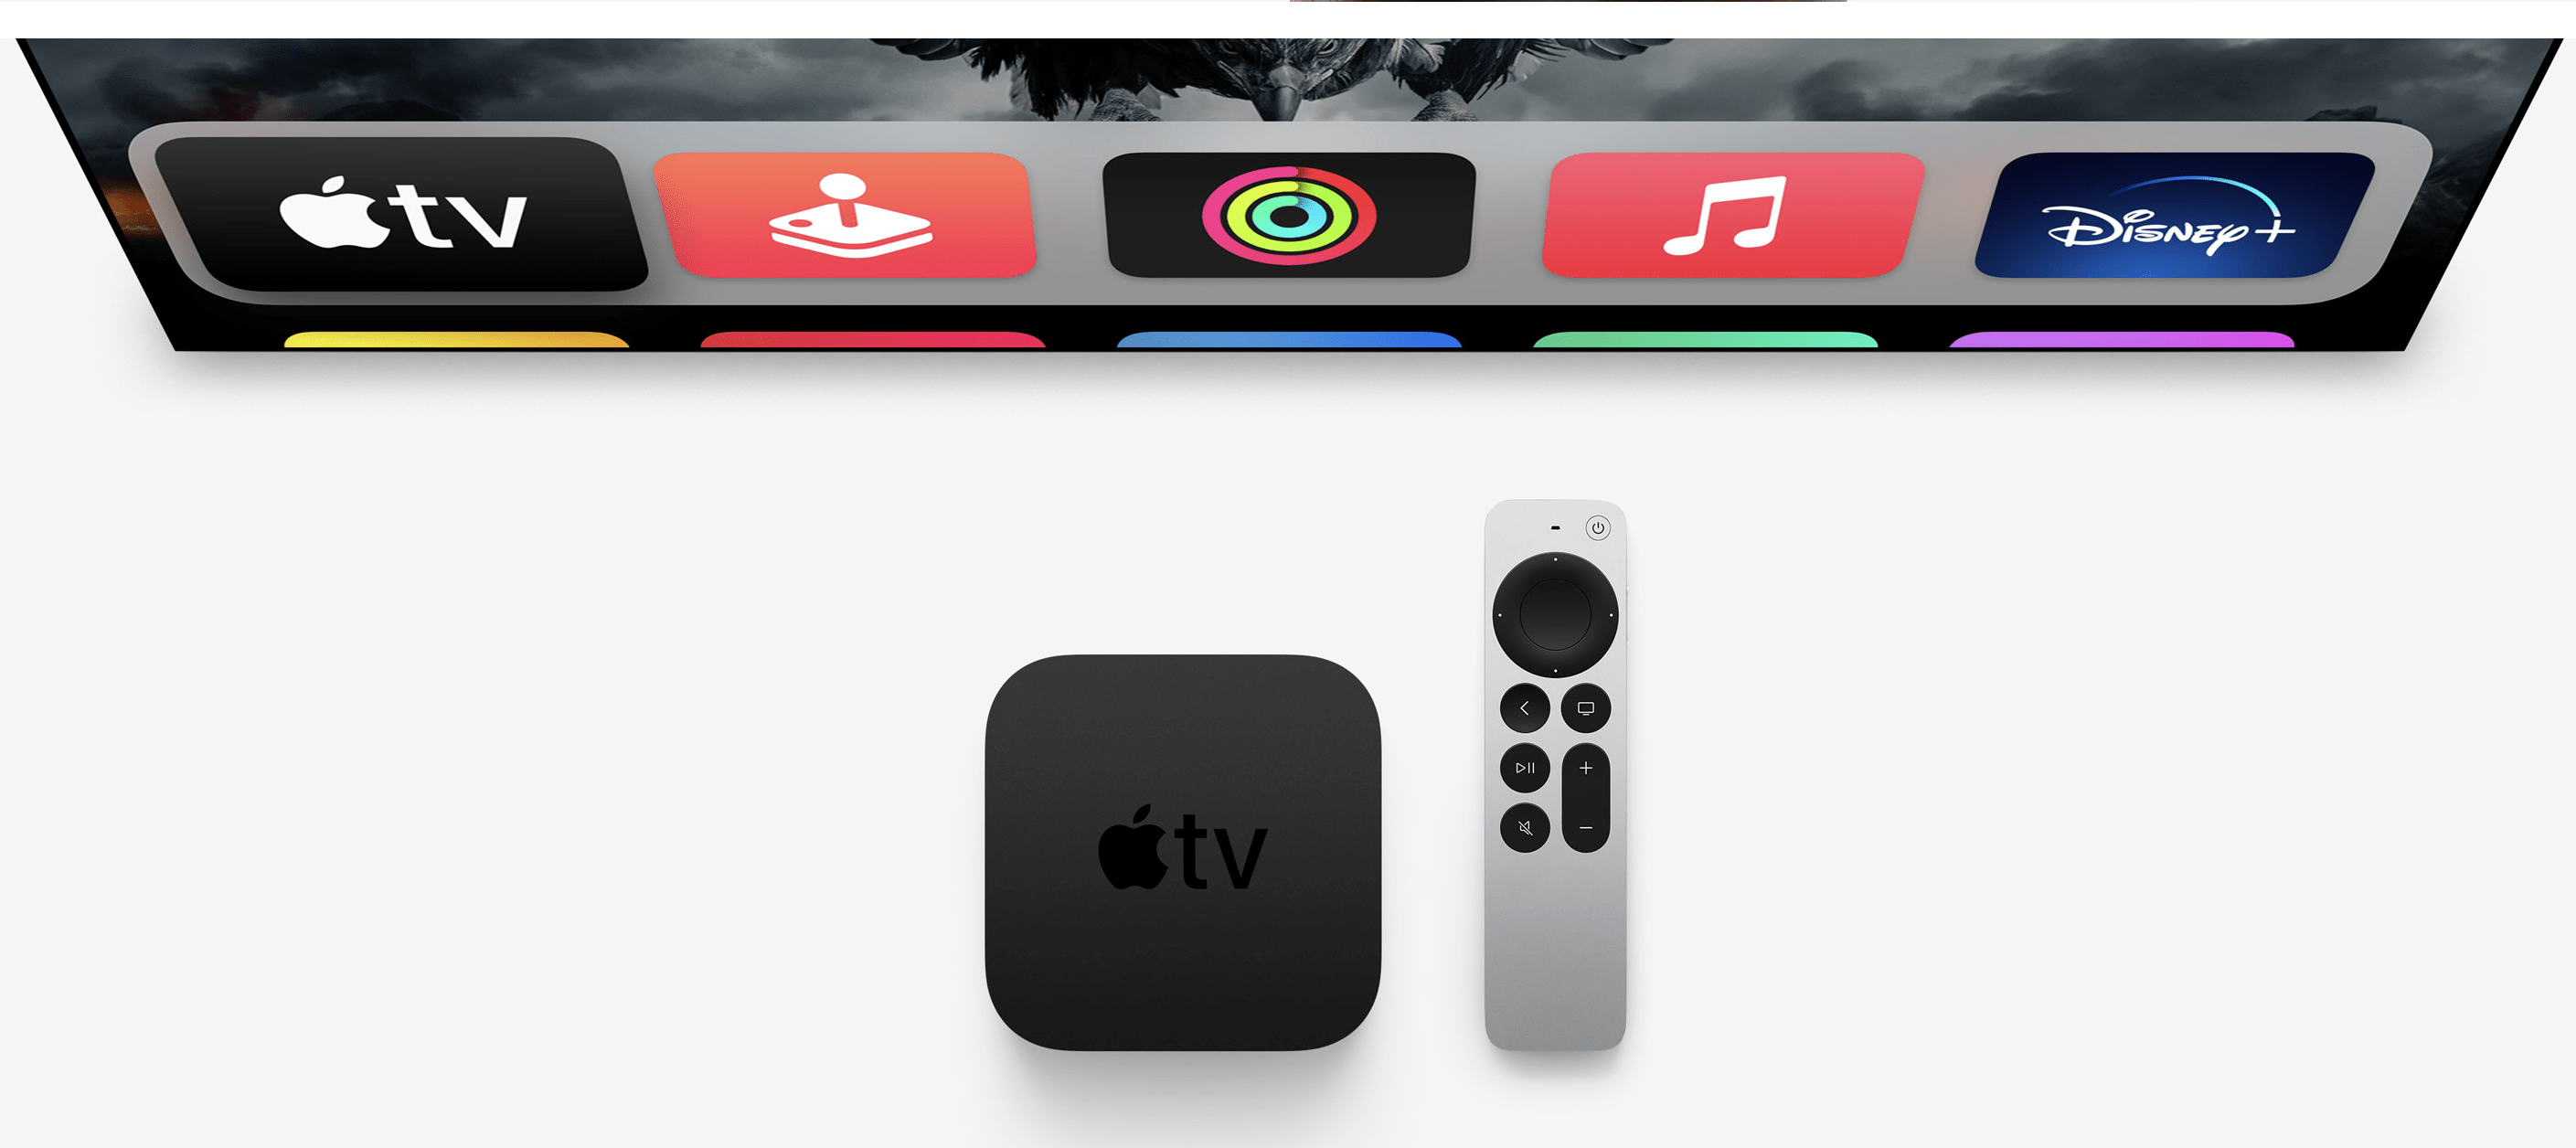 Apple 4k TV 2021